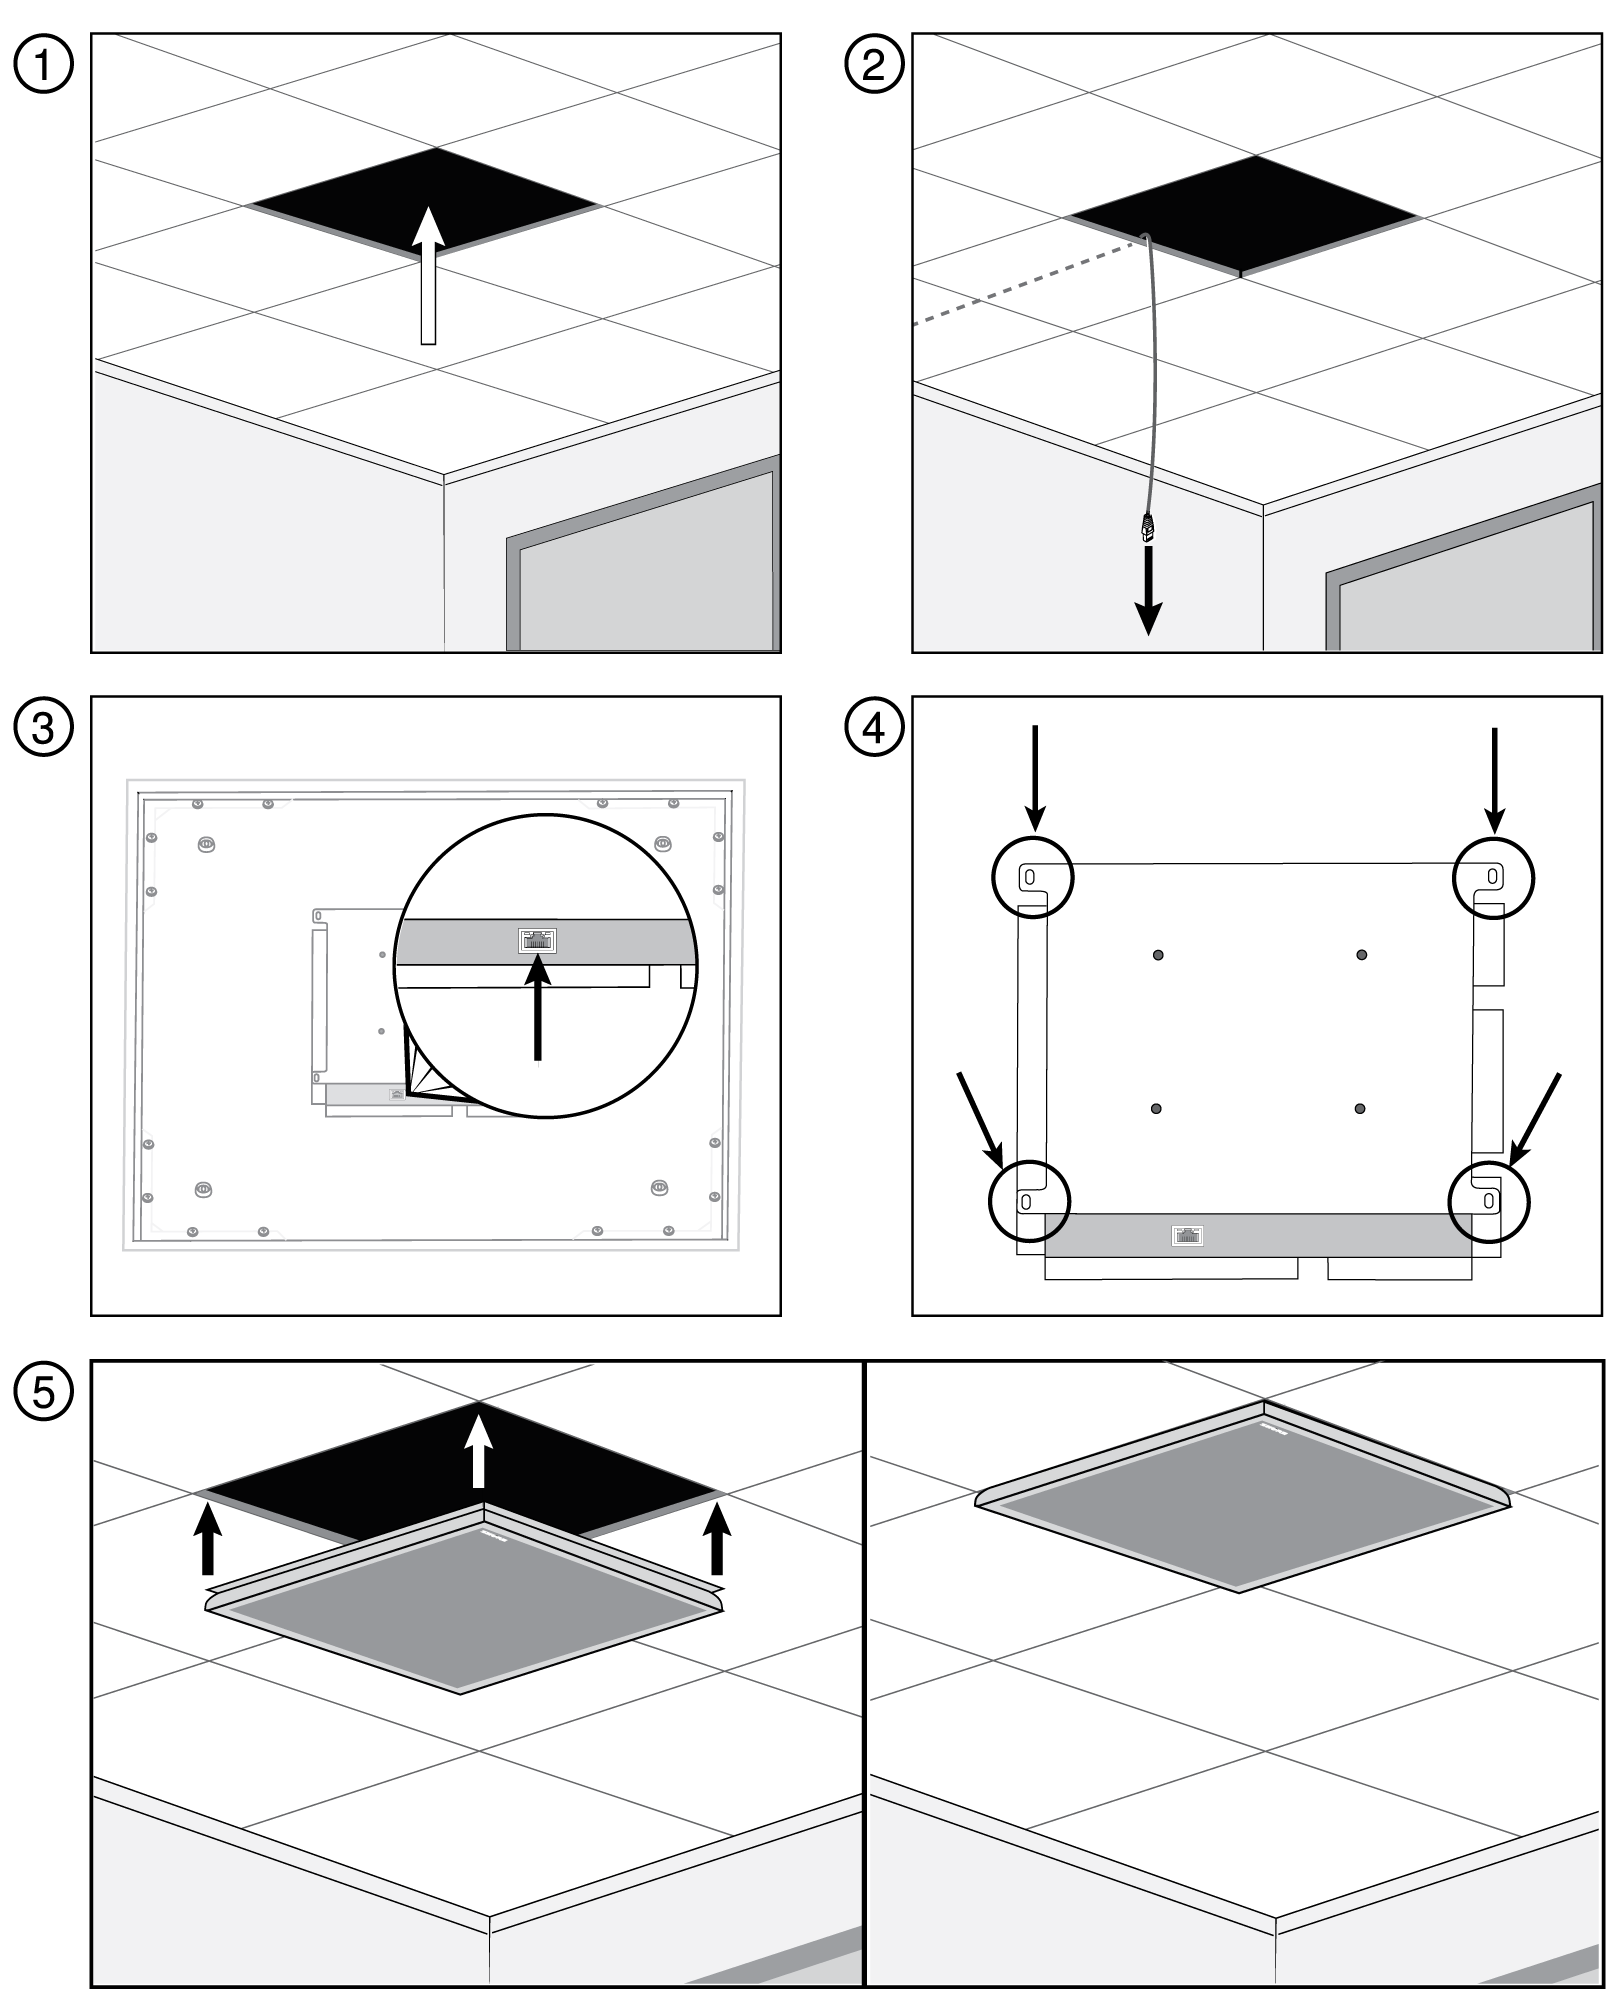 Numbered illustrations showing how to install the MXA910W-A model in a ceiling grid.